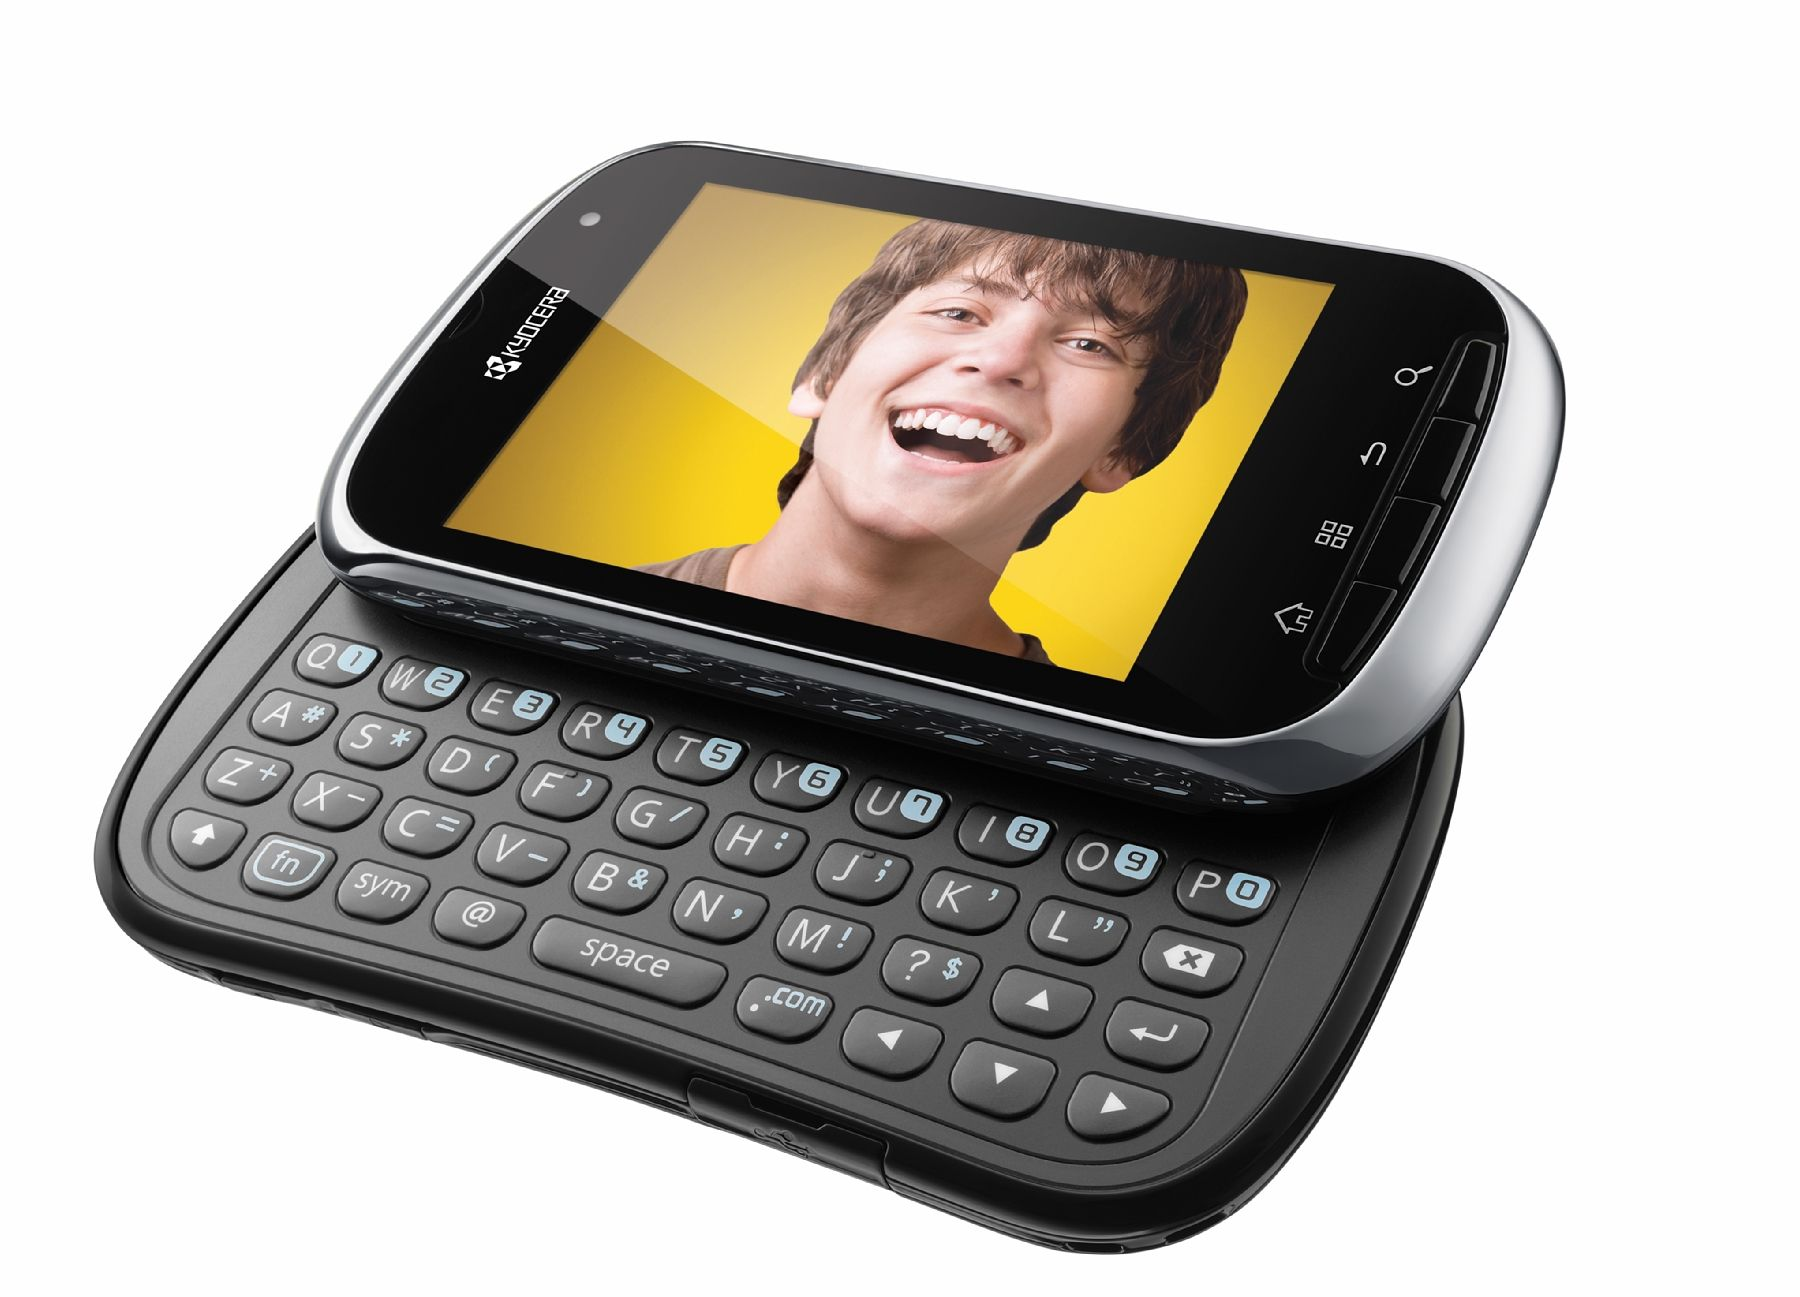 Kyocera Milano! Another great smartphone for seniors! This